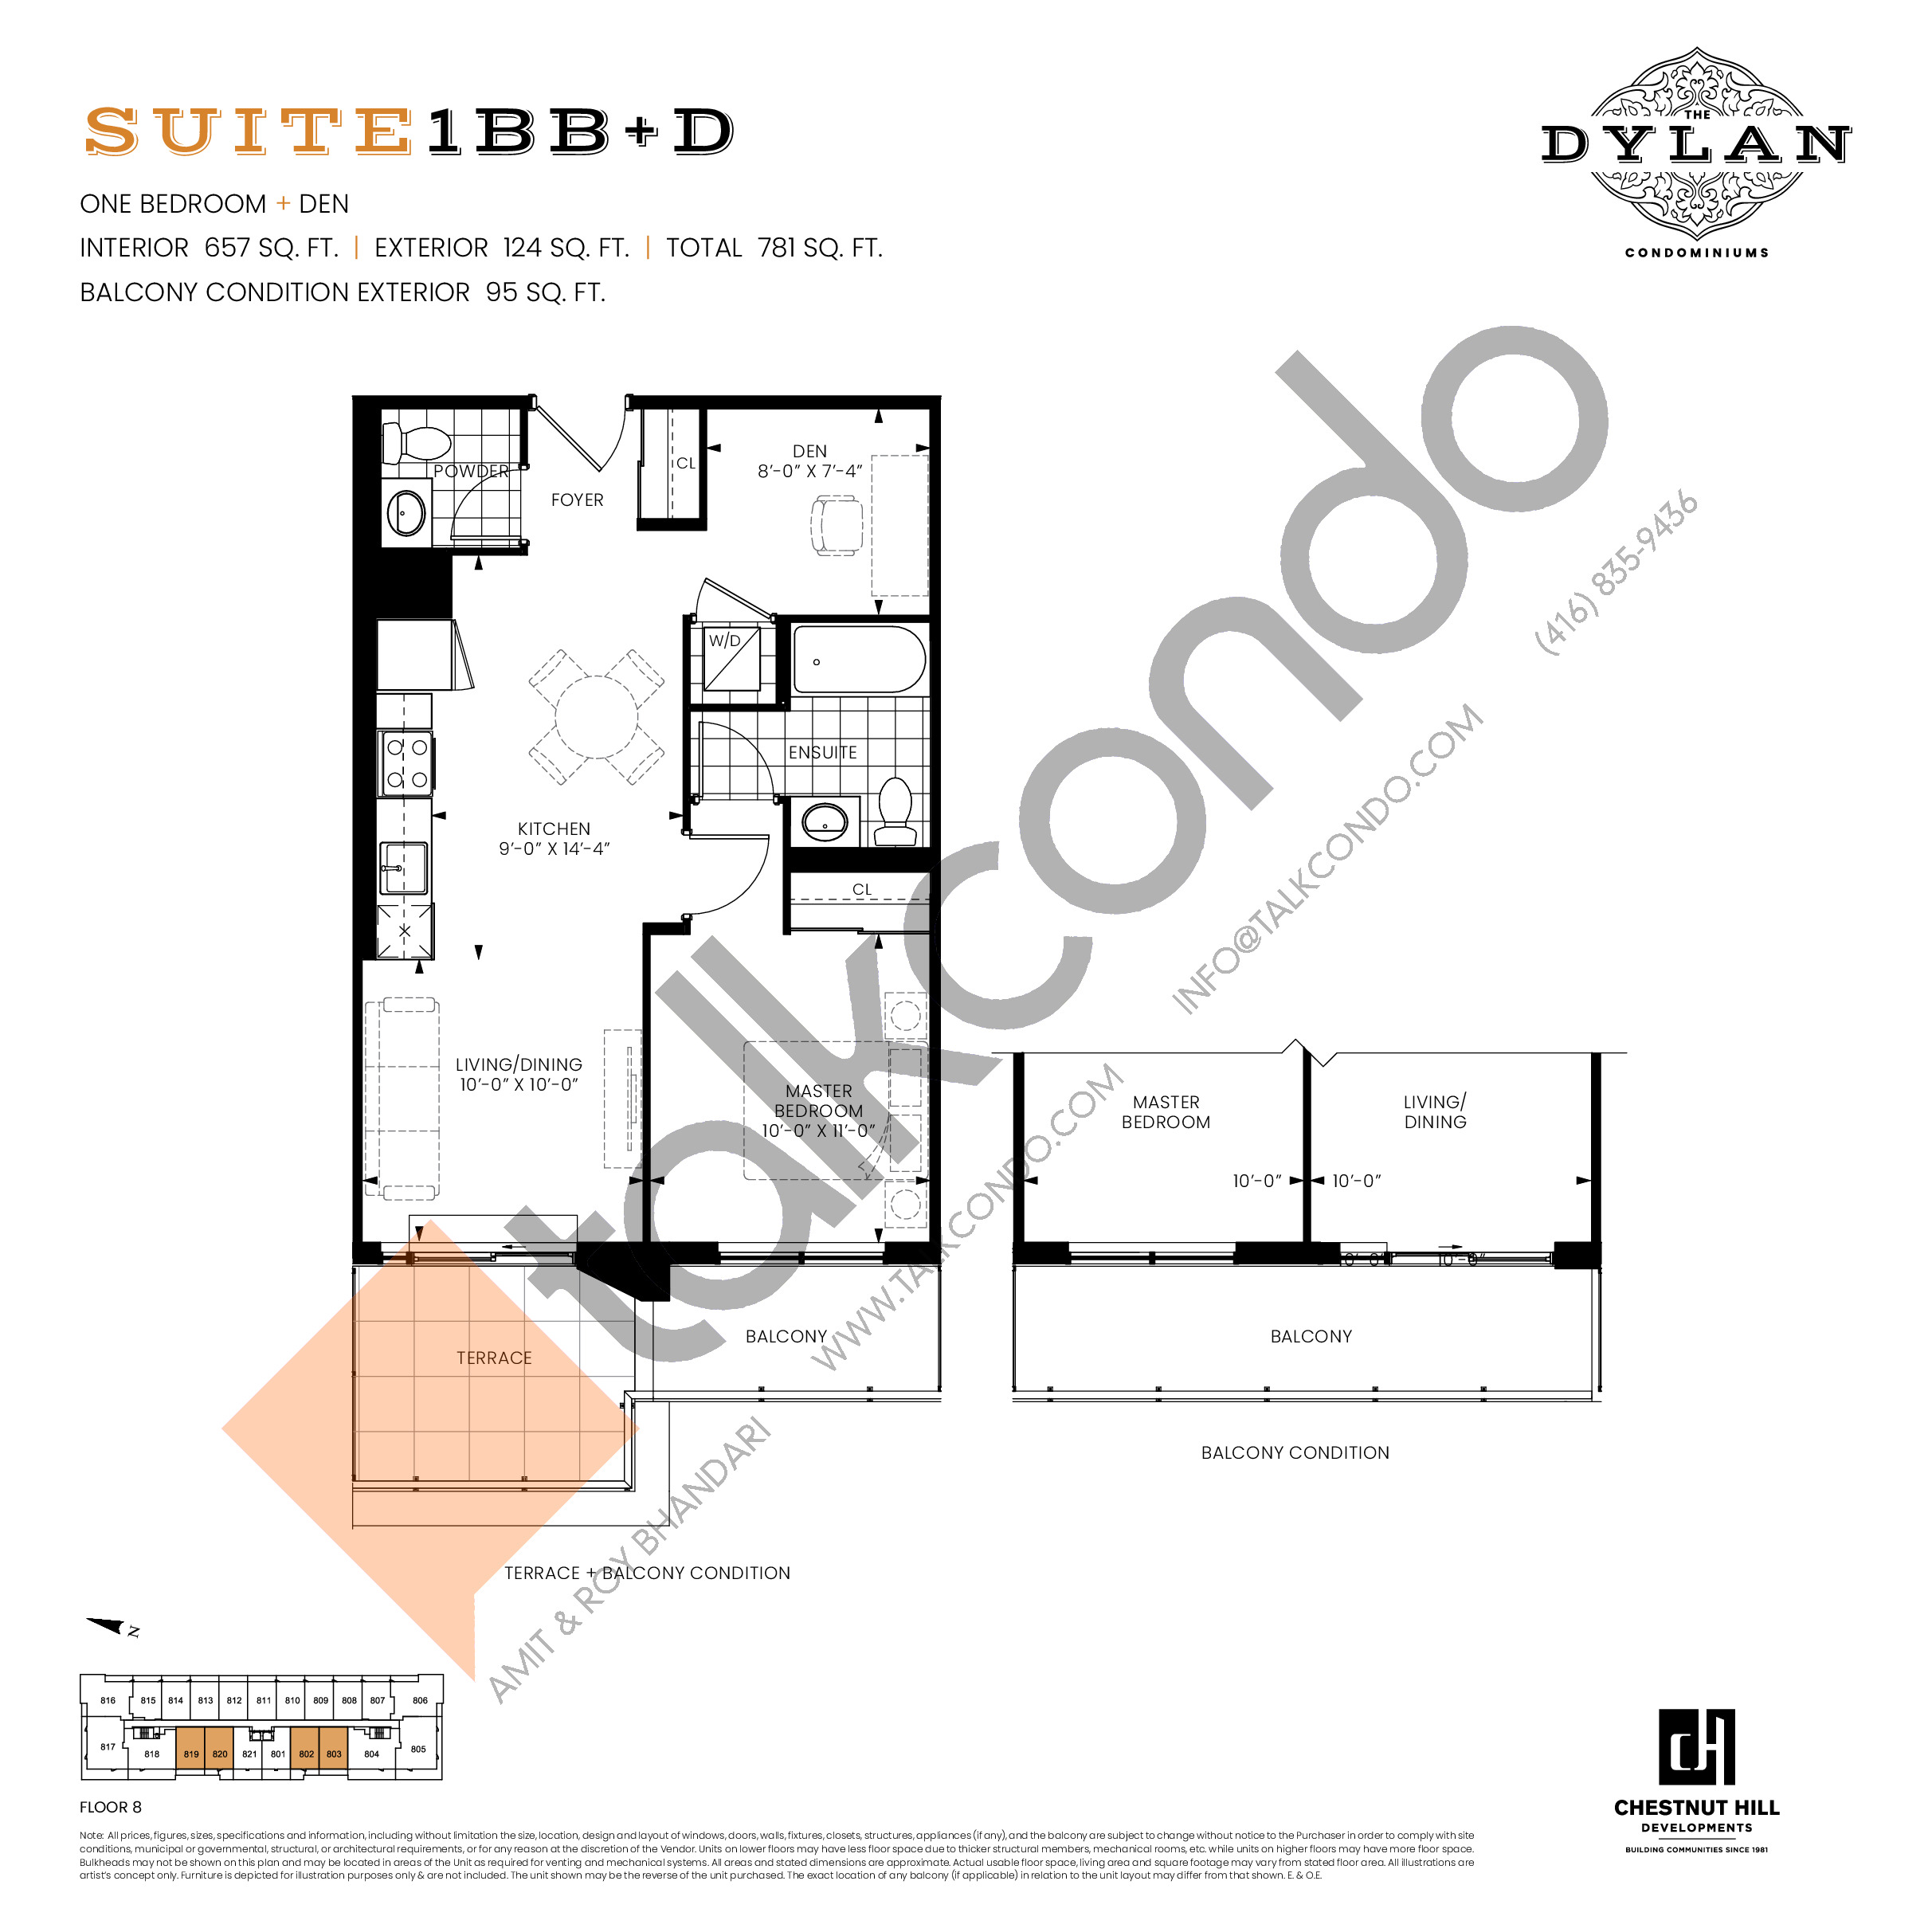 Suite 1BB+D Floor Plan at The Dylan Condos - 657 sq.ft